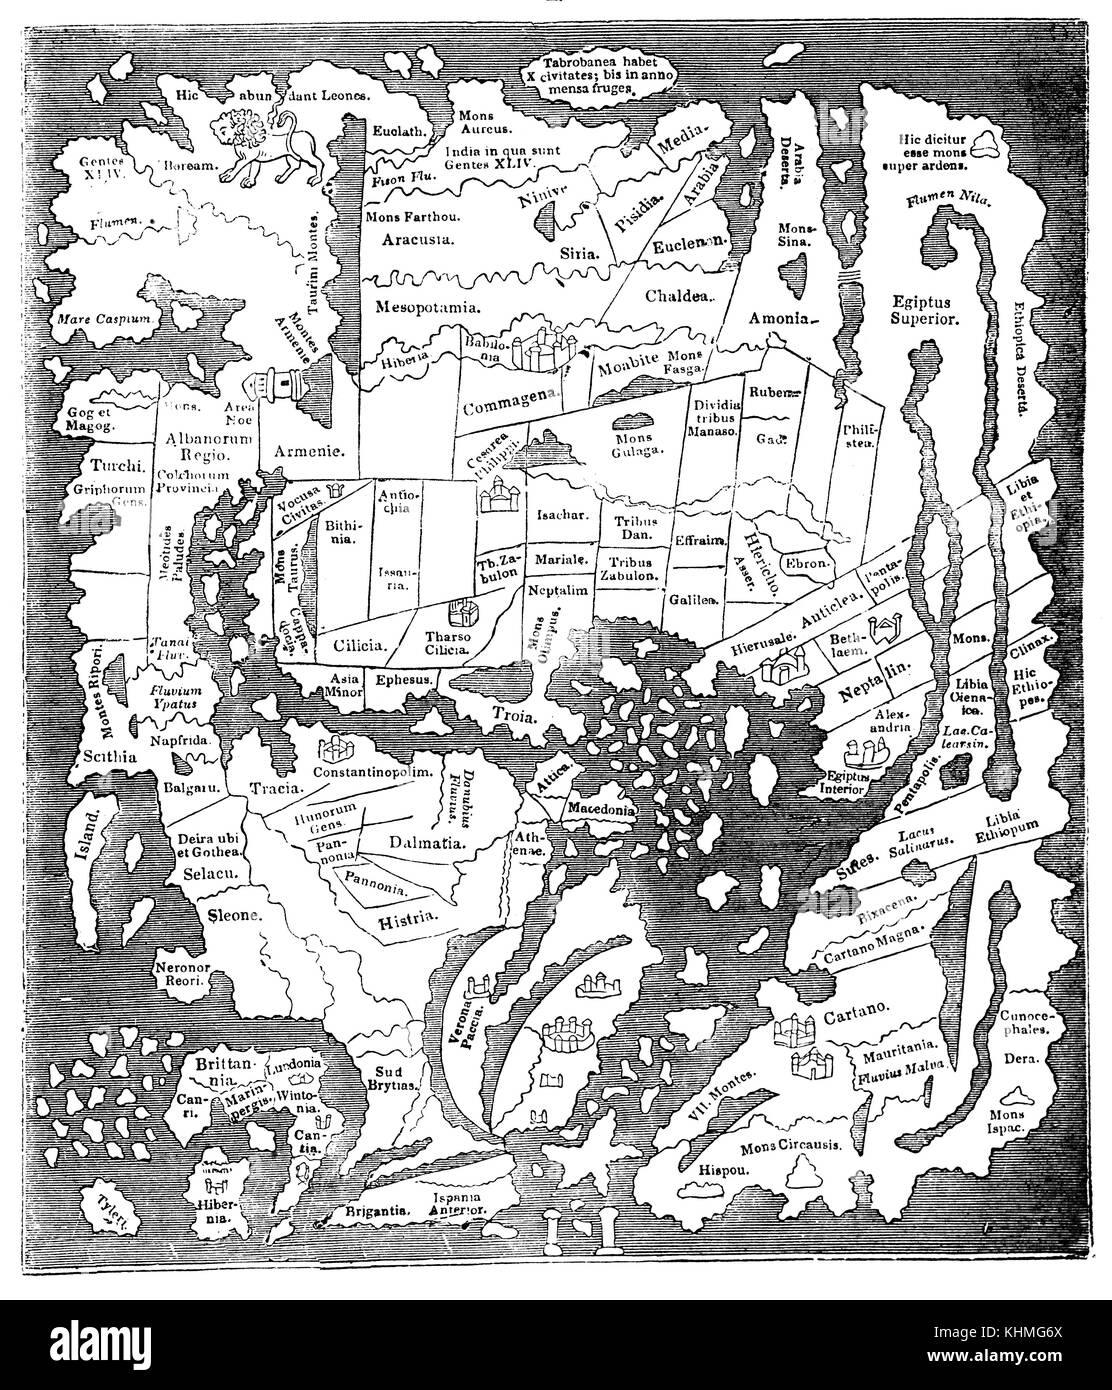 The early Map taken from a 10th century map in the Cottonian Library is imperfect but sufficiently useful to aid - Stock Image